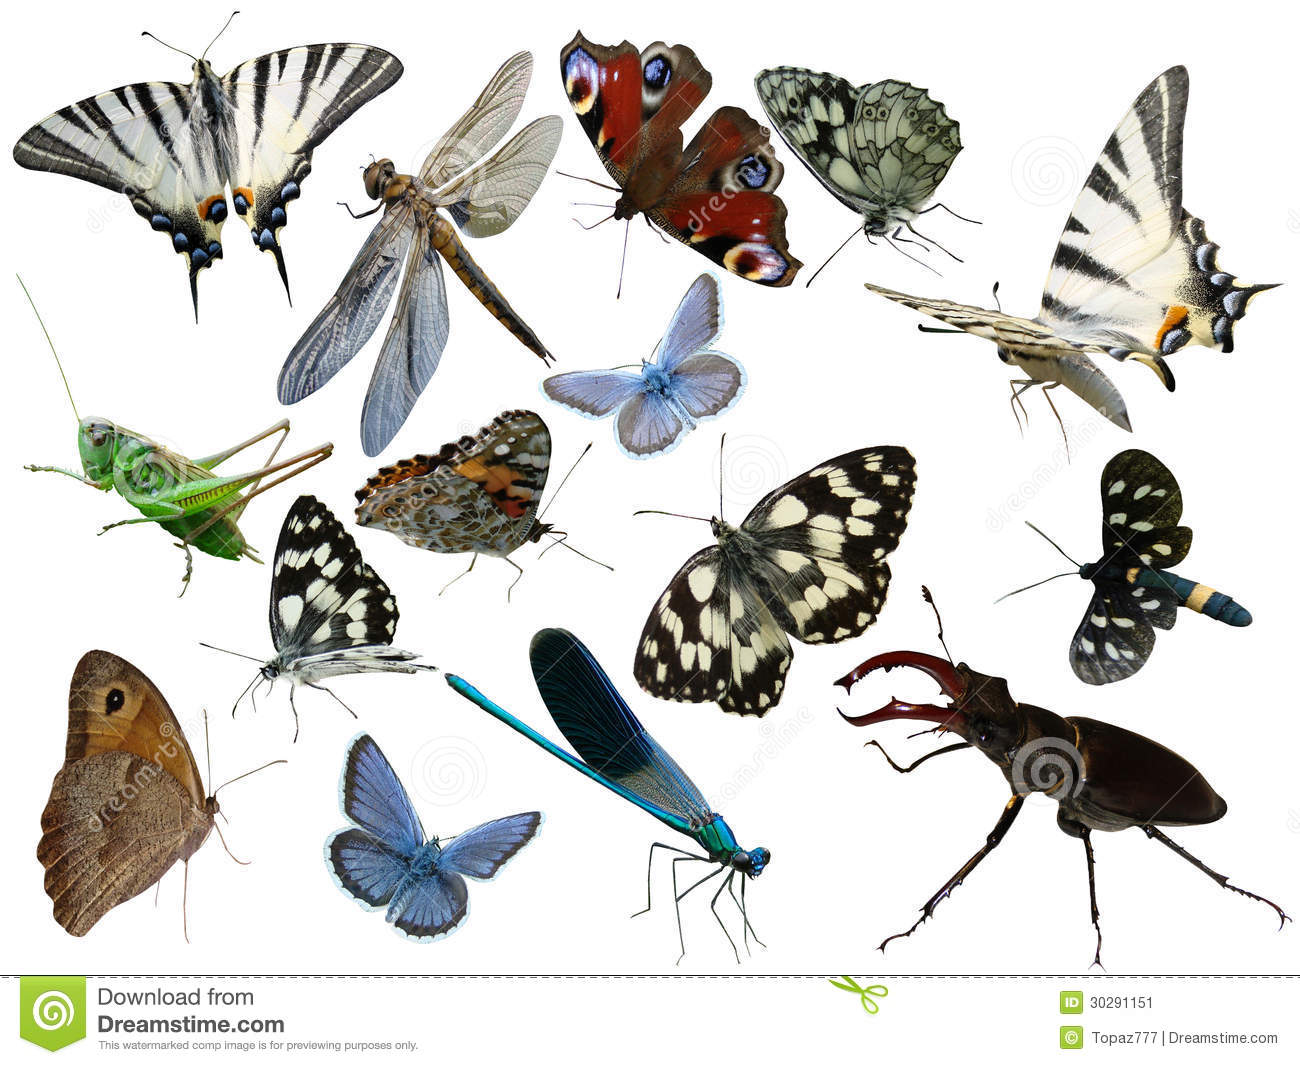 Butterflies, dragonfly, a grasshopper, other insects